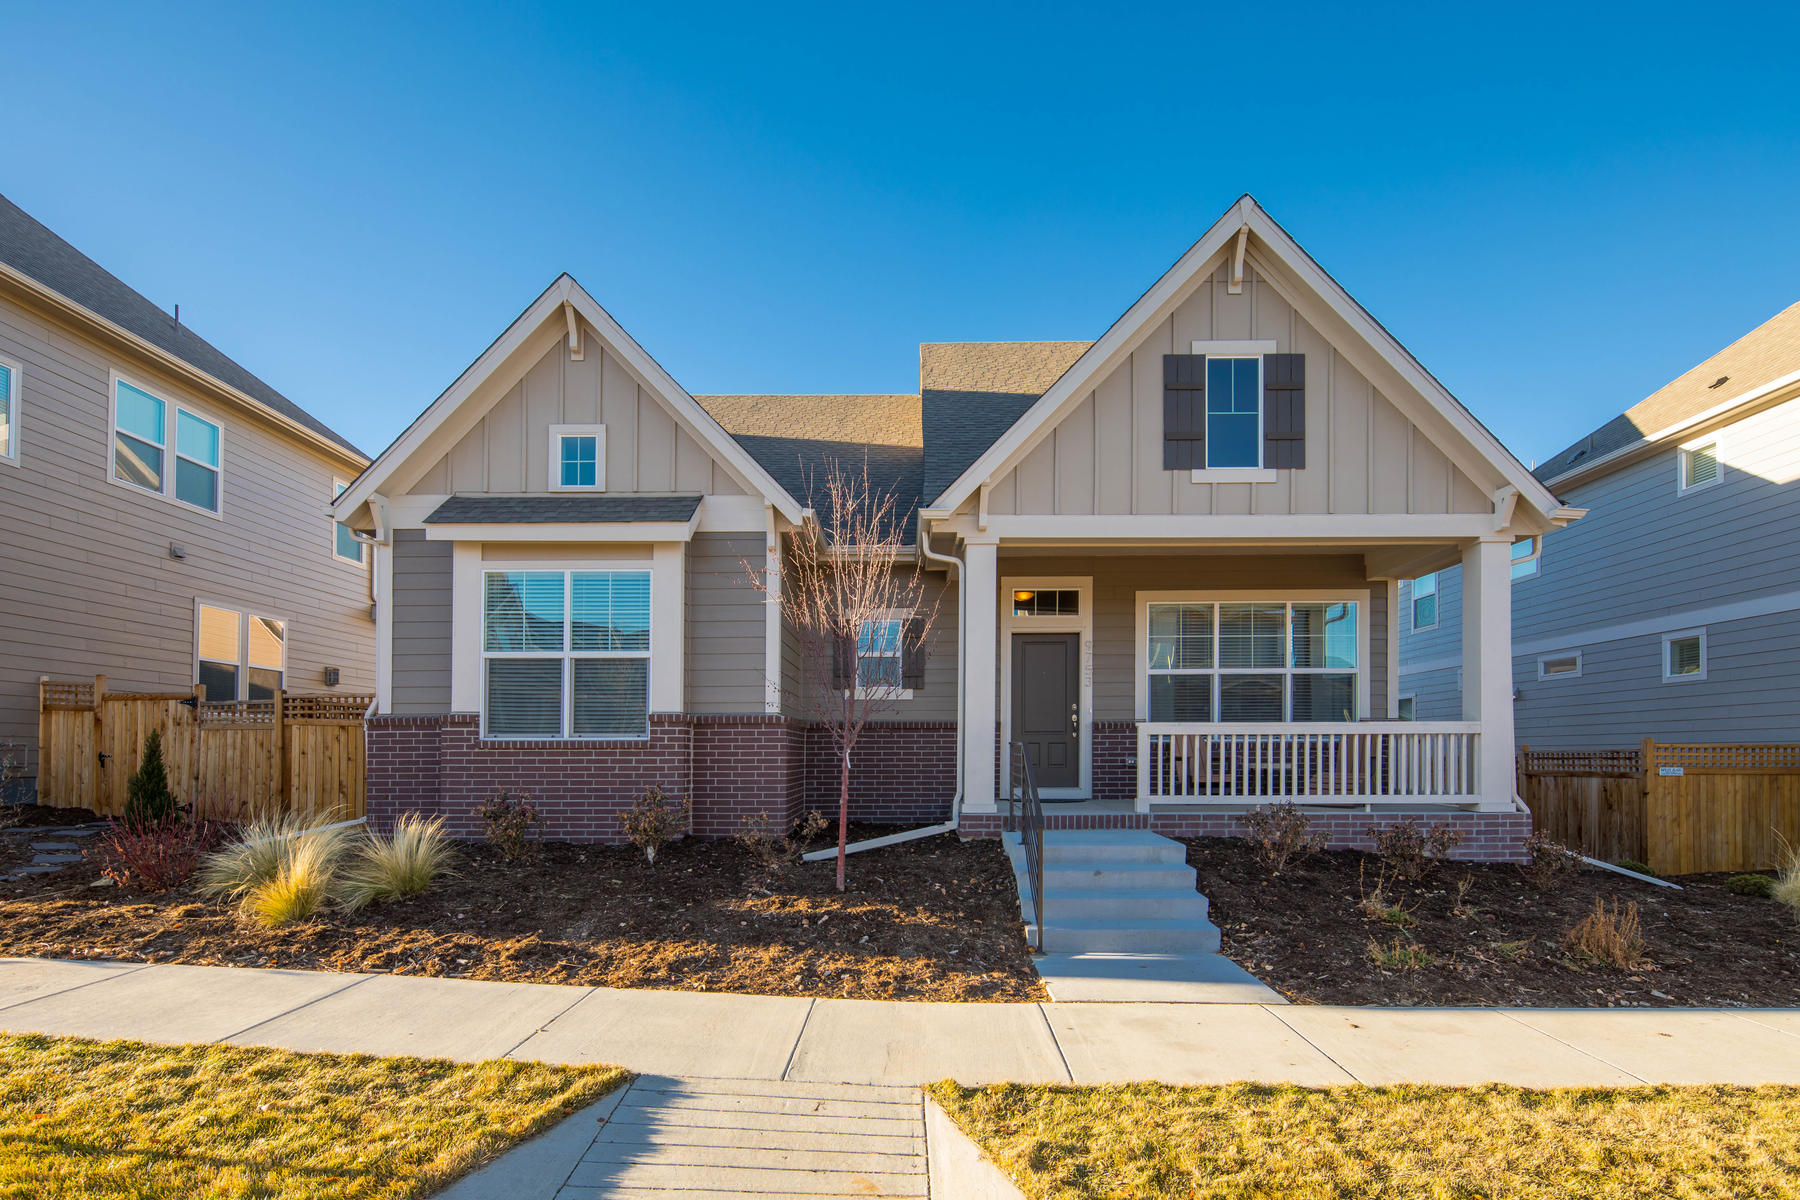 Single Family Home for Active at Pristine Hyland Village Home Offers all the Advantages of a New Build, 9753 Depew St. Westminster, Colorado 80020 United States